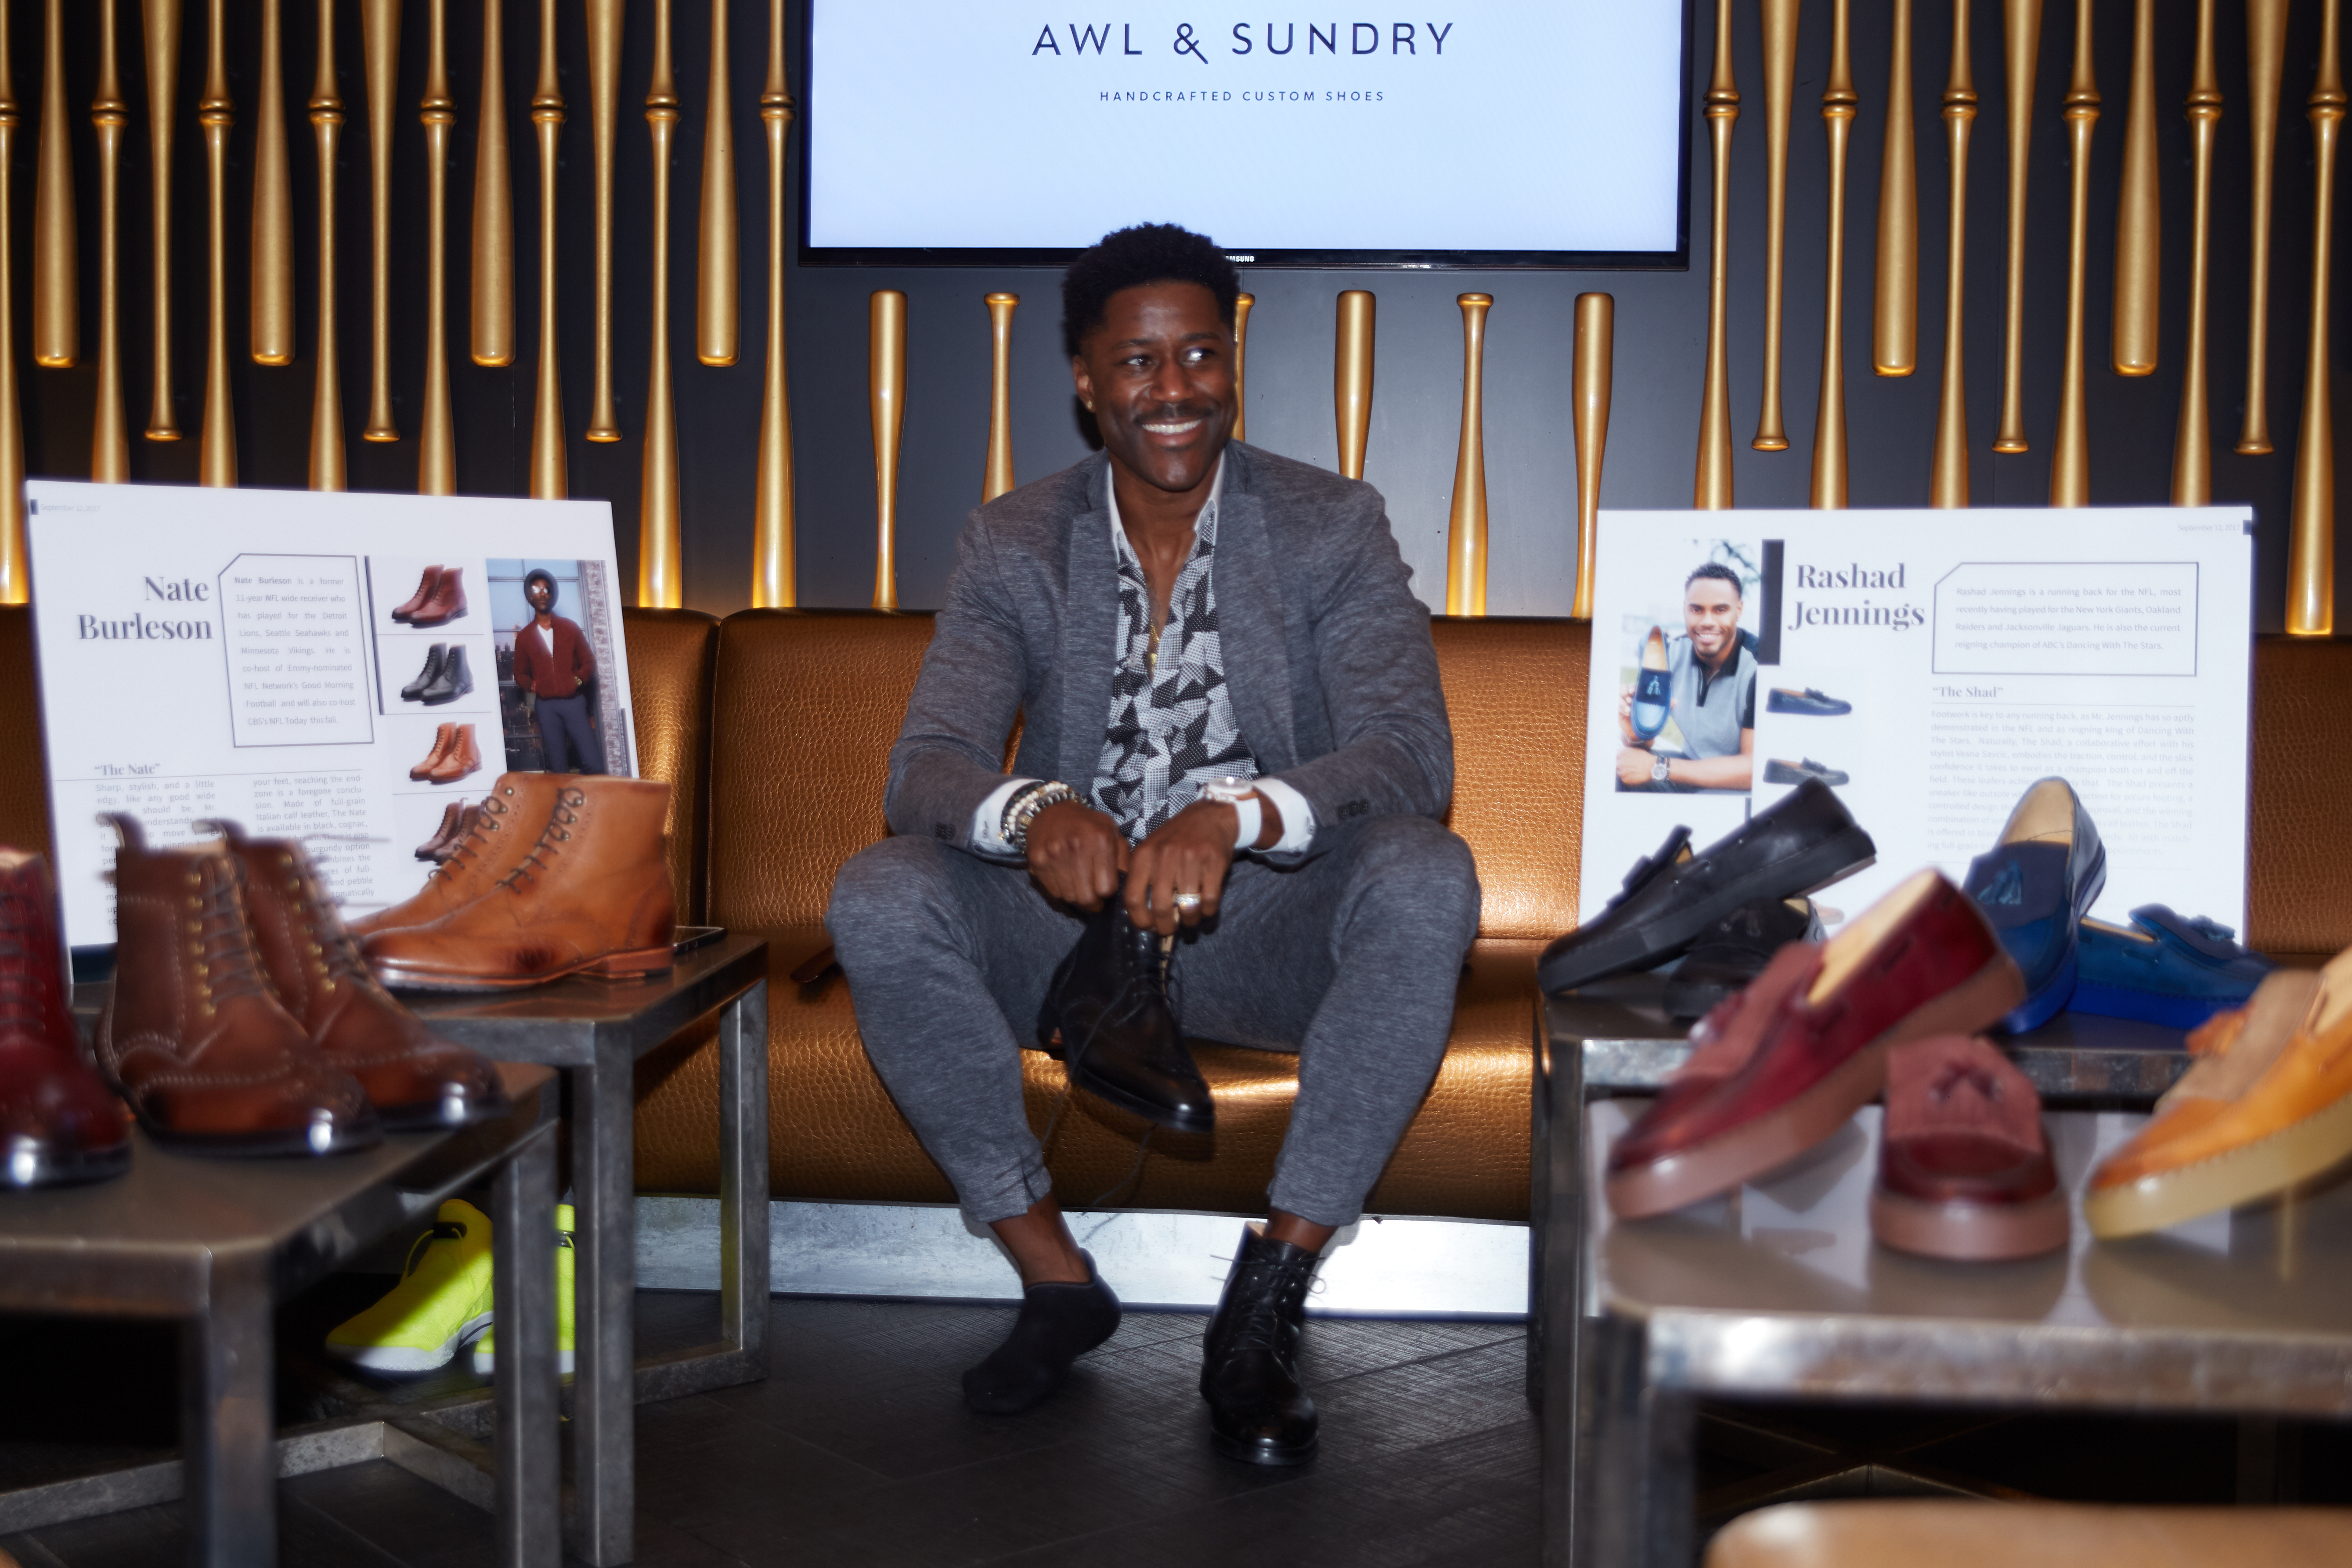 NFL Stars Collaborate On Shoe Collection w/ Awl & Sundry To Benefit Children in Africa